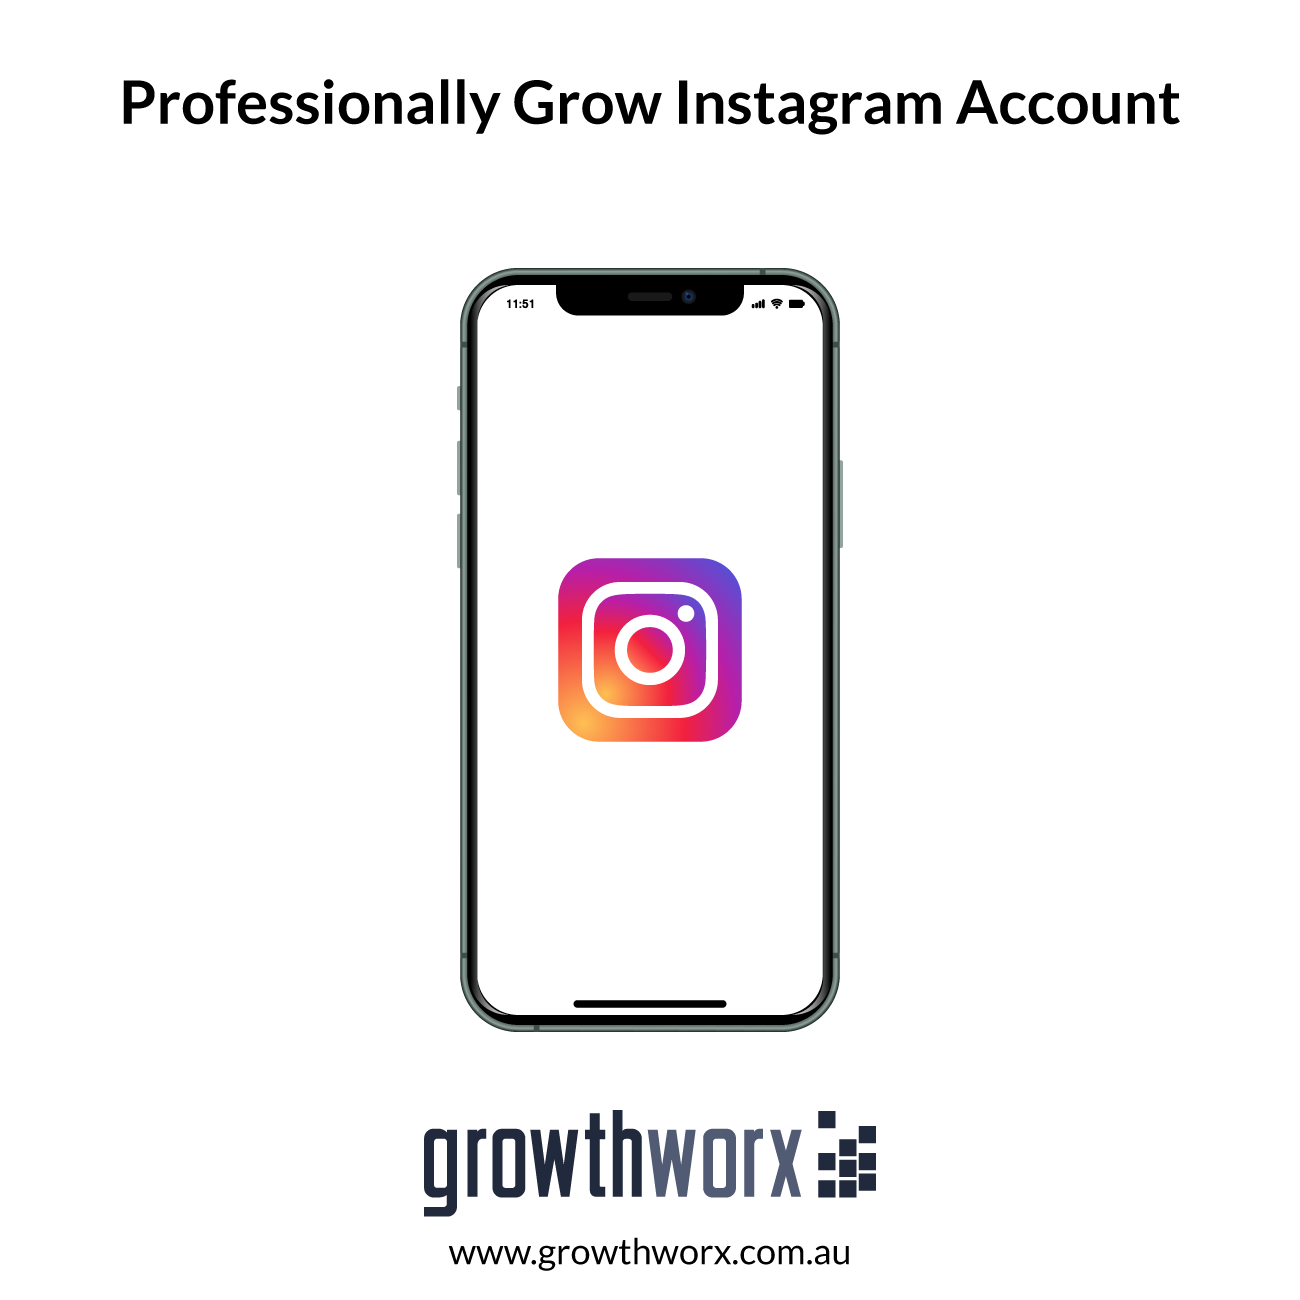 We will professionally grow your instagram account 1